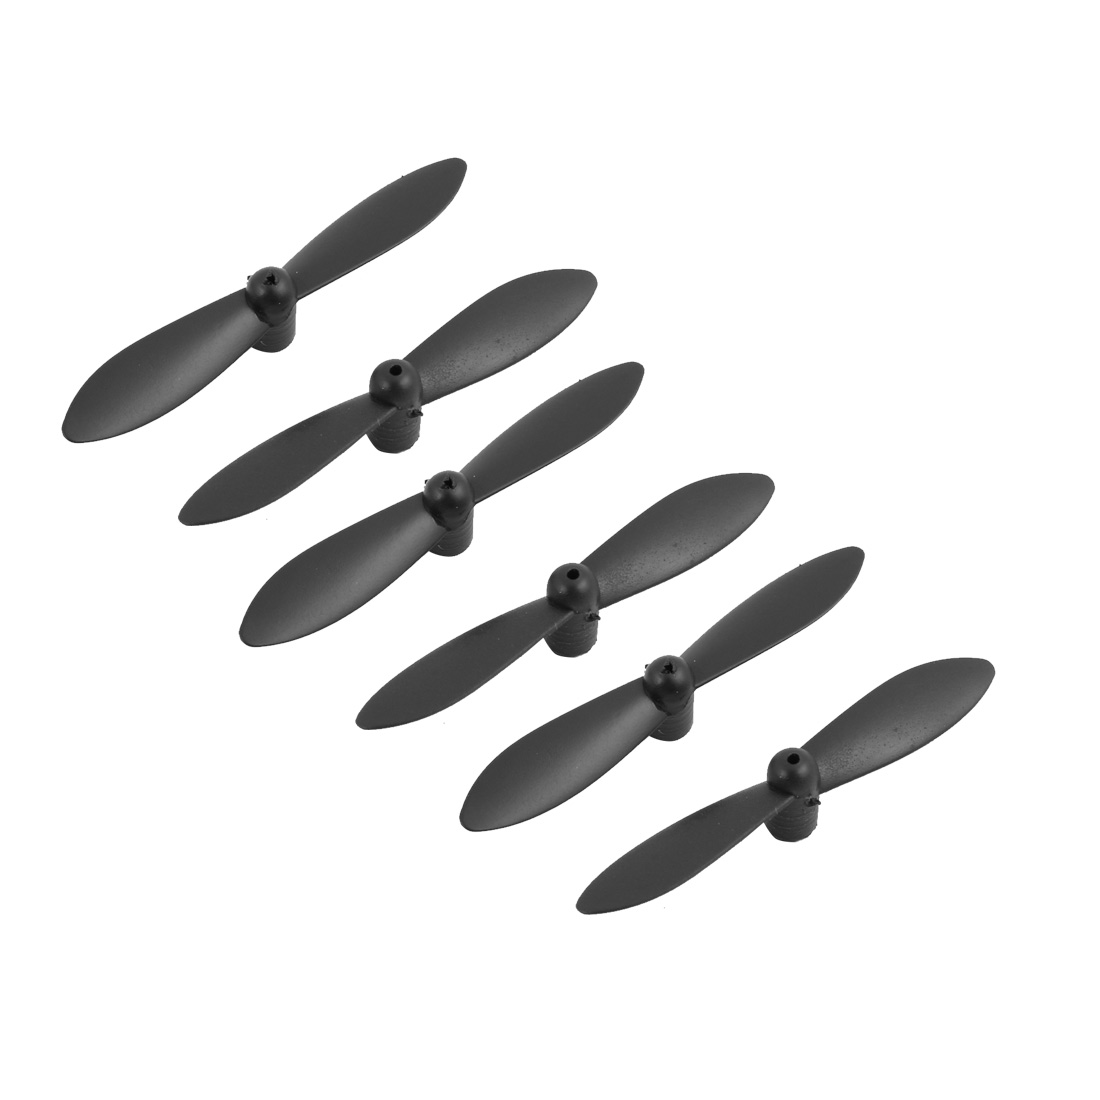 3A+3B Propeller Blades for MJX X901 X900 Six Axis Aircraft Set 6Pcs Black